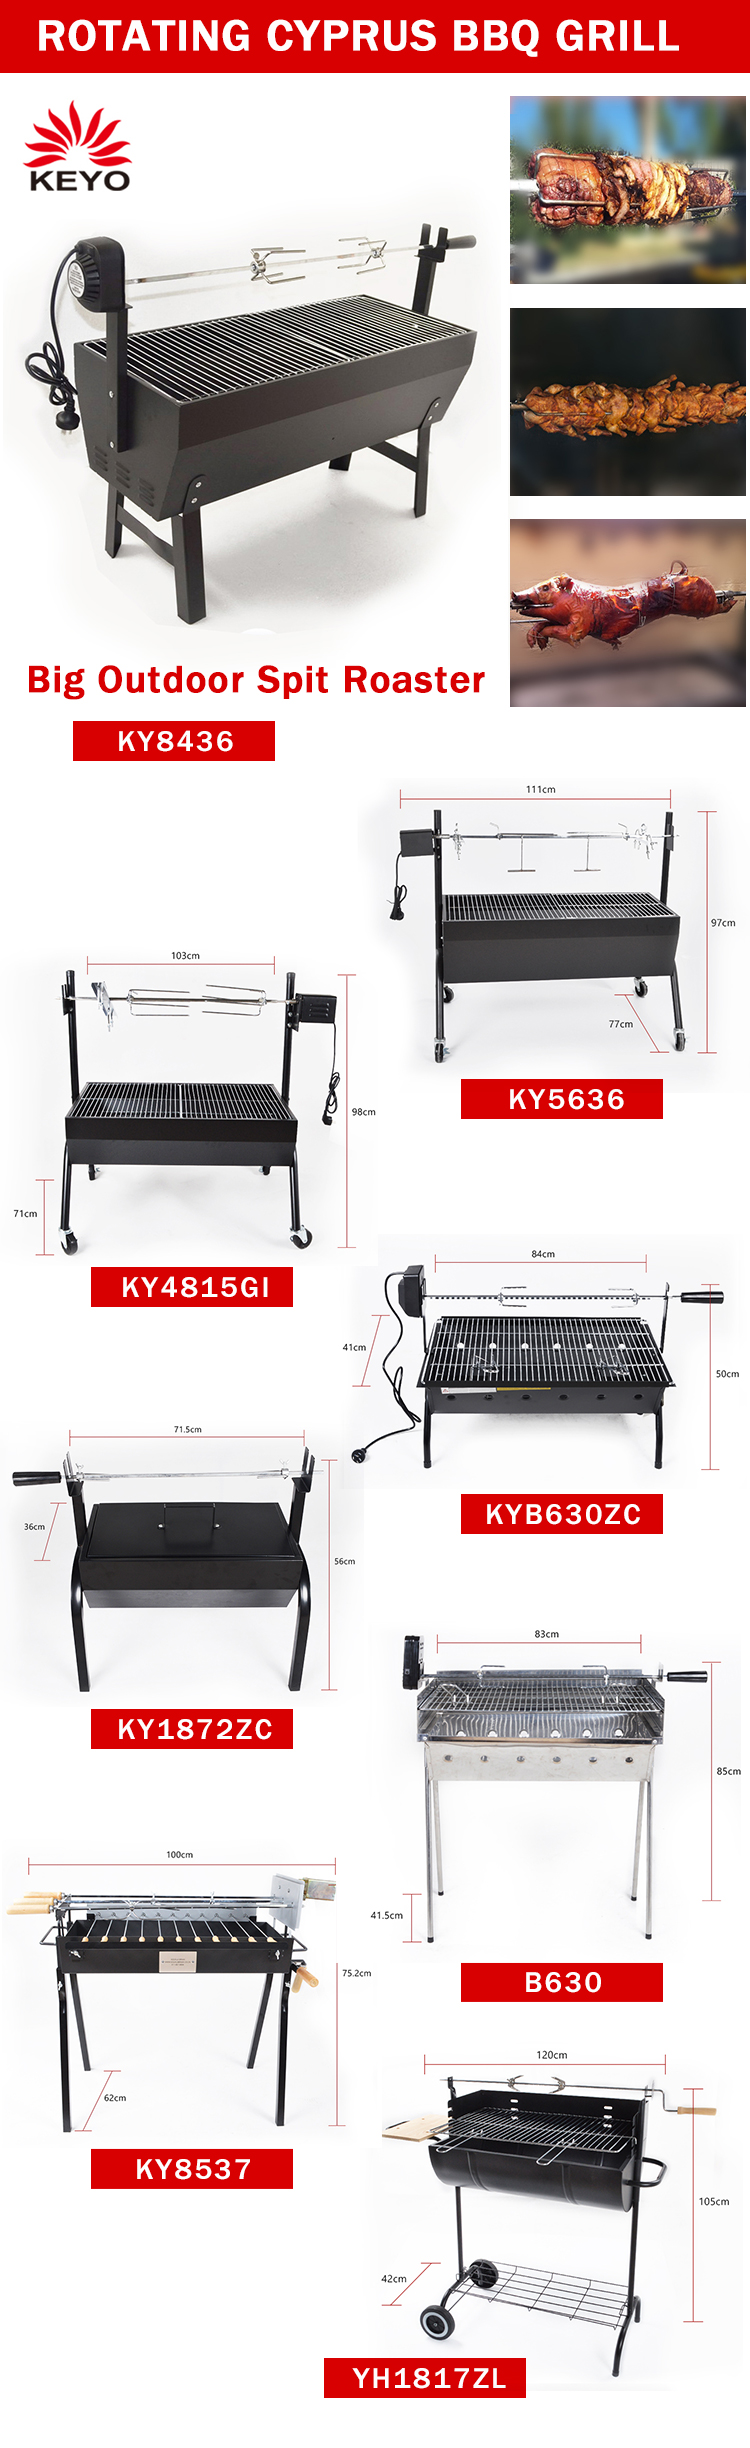 hot sale shawarma heavy duty spit roaster barbecue grills pig roaster cyprus master bbq grill rotisserie